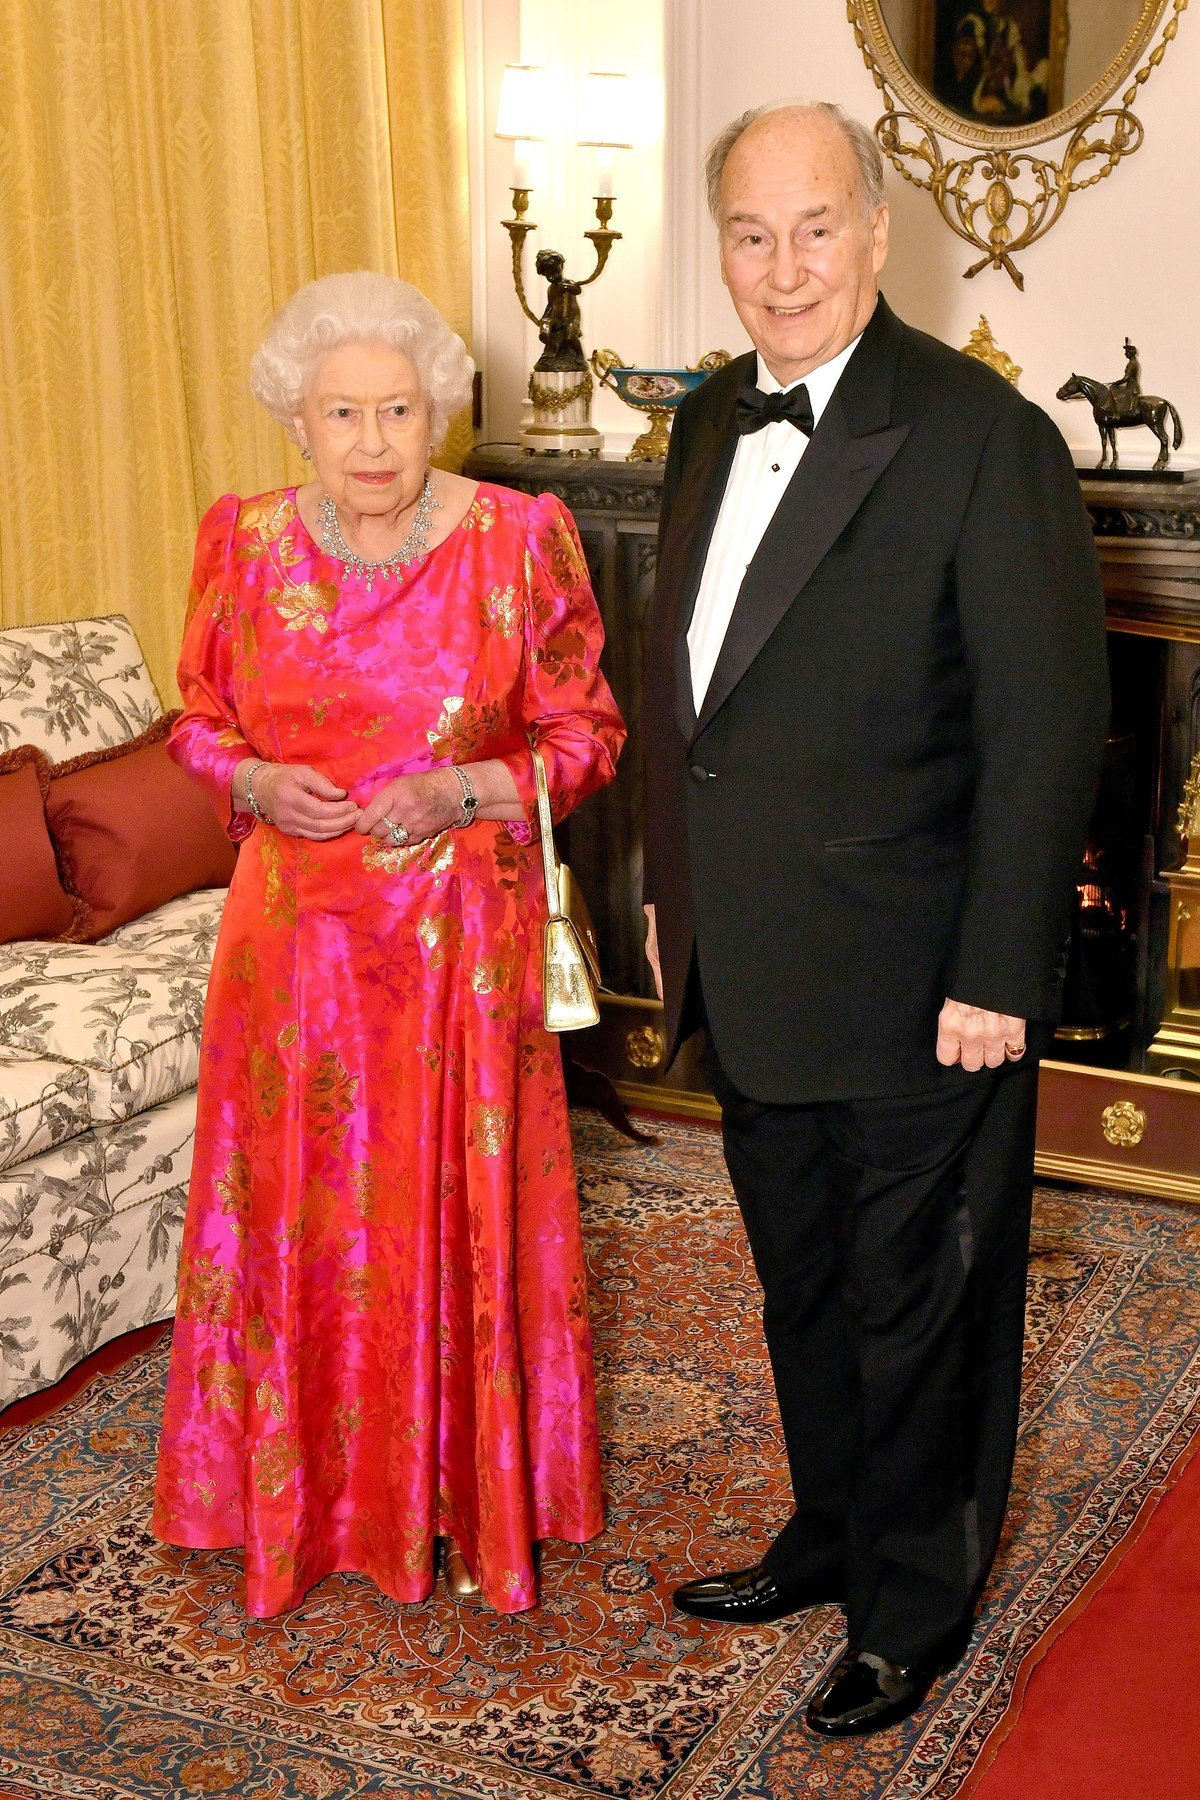 The Queen Elizabeth II and the Aga Khan in the Oak Room at Windsor Castle before she hosts a private dinner in honour of the diamond jubilee of his leadership as Imam of the Shia Ismaili Muslim Community., Image: 365524179, License: Rights-managed, Restrictions: , Model Release: no, Credit line: Profimedia, Press Association